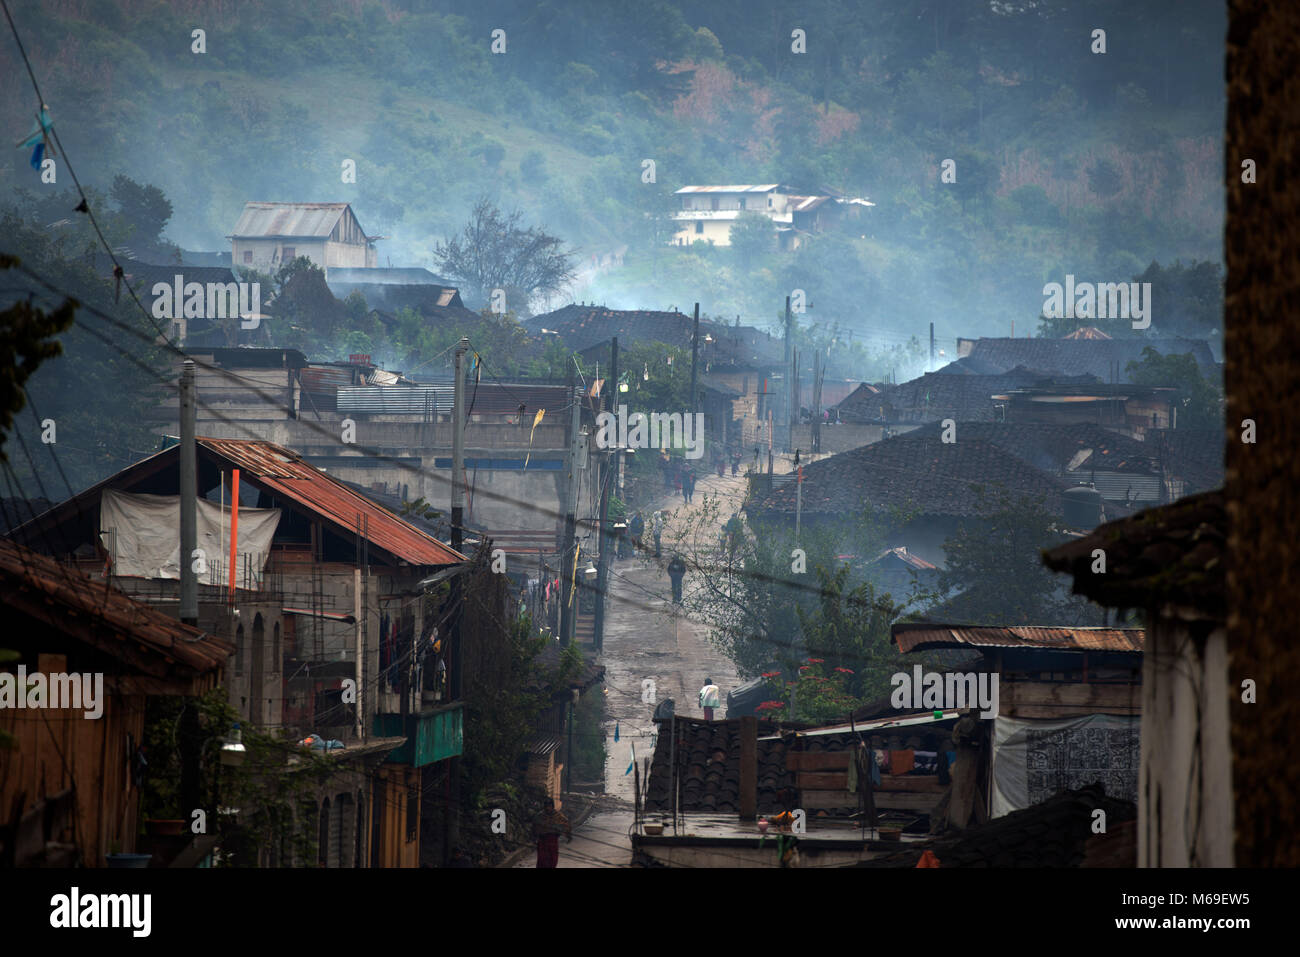 The Ixil Maya village, San Gaspar Chajul, is constantly misty due to its location in the Cuchumatanes mountains - Stock Image